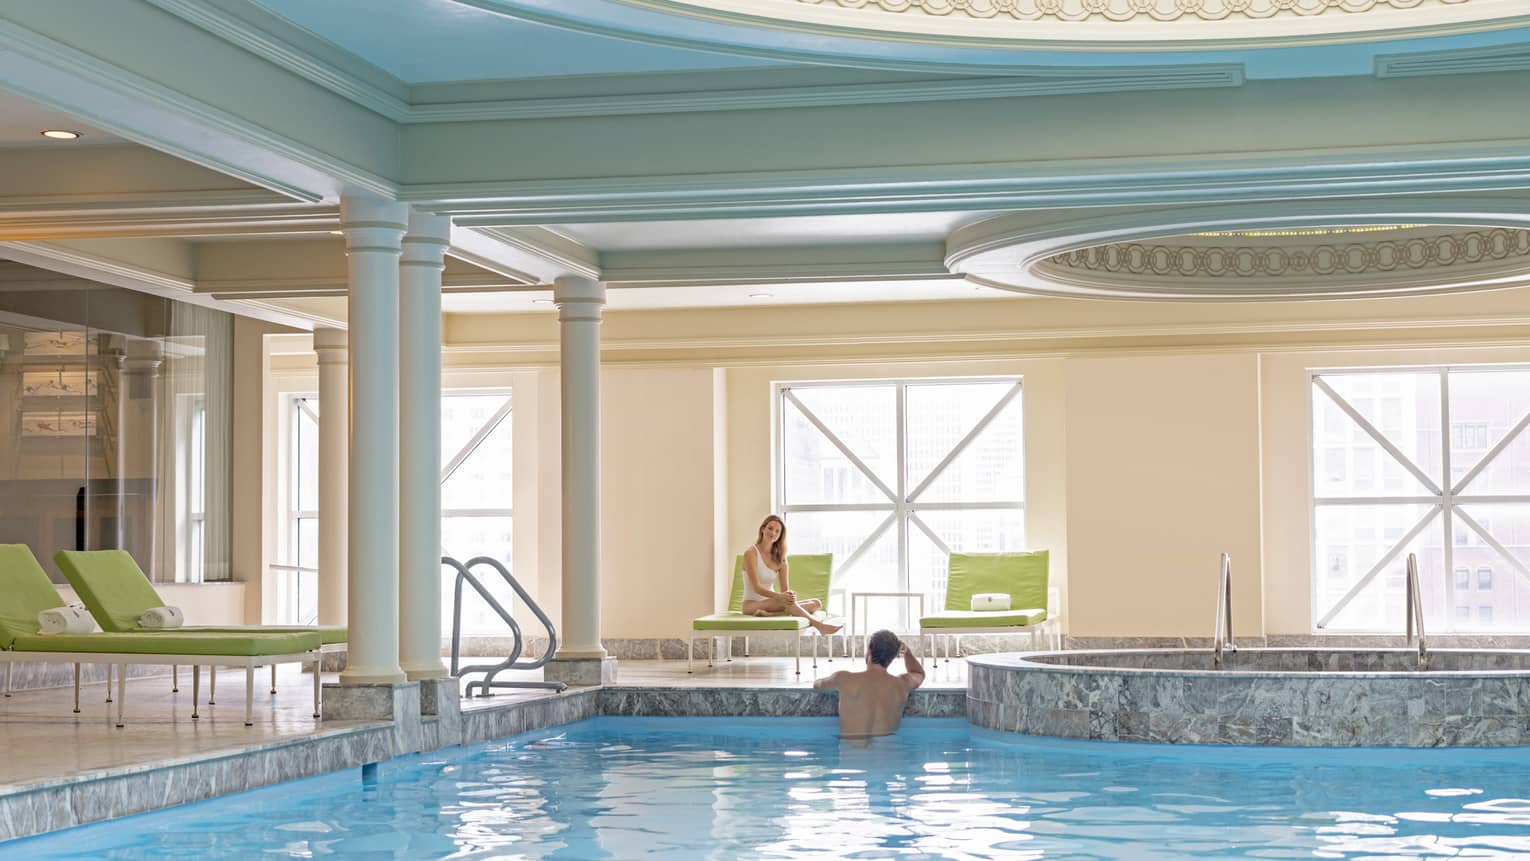 Man at edge in indoor pool looking at woman seated in lime green lounge chair, three more chairs